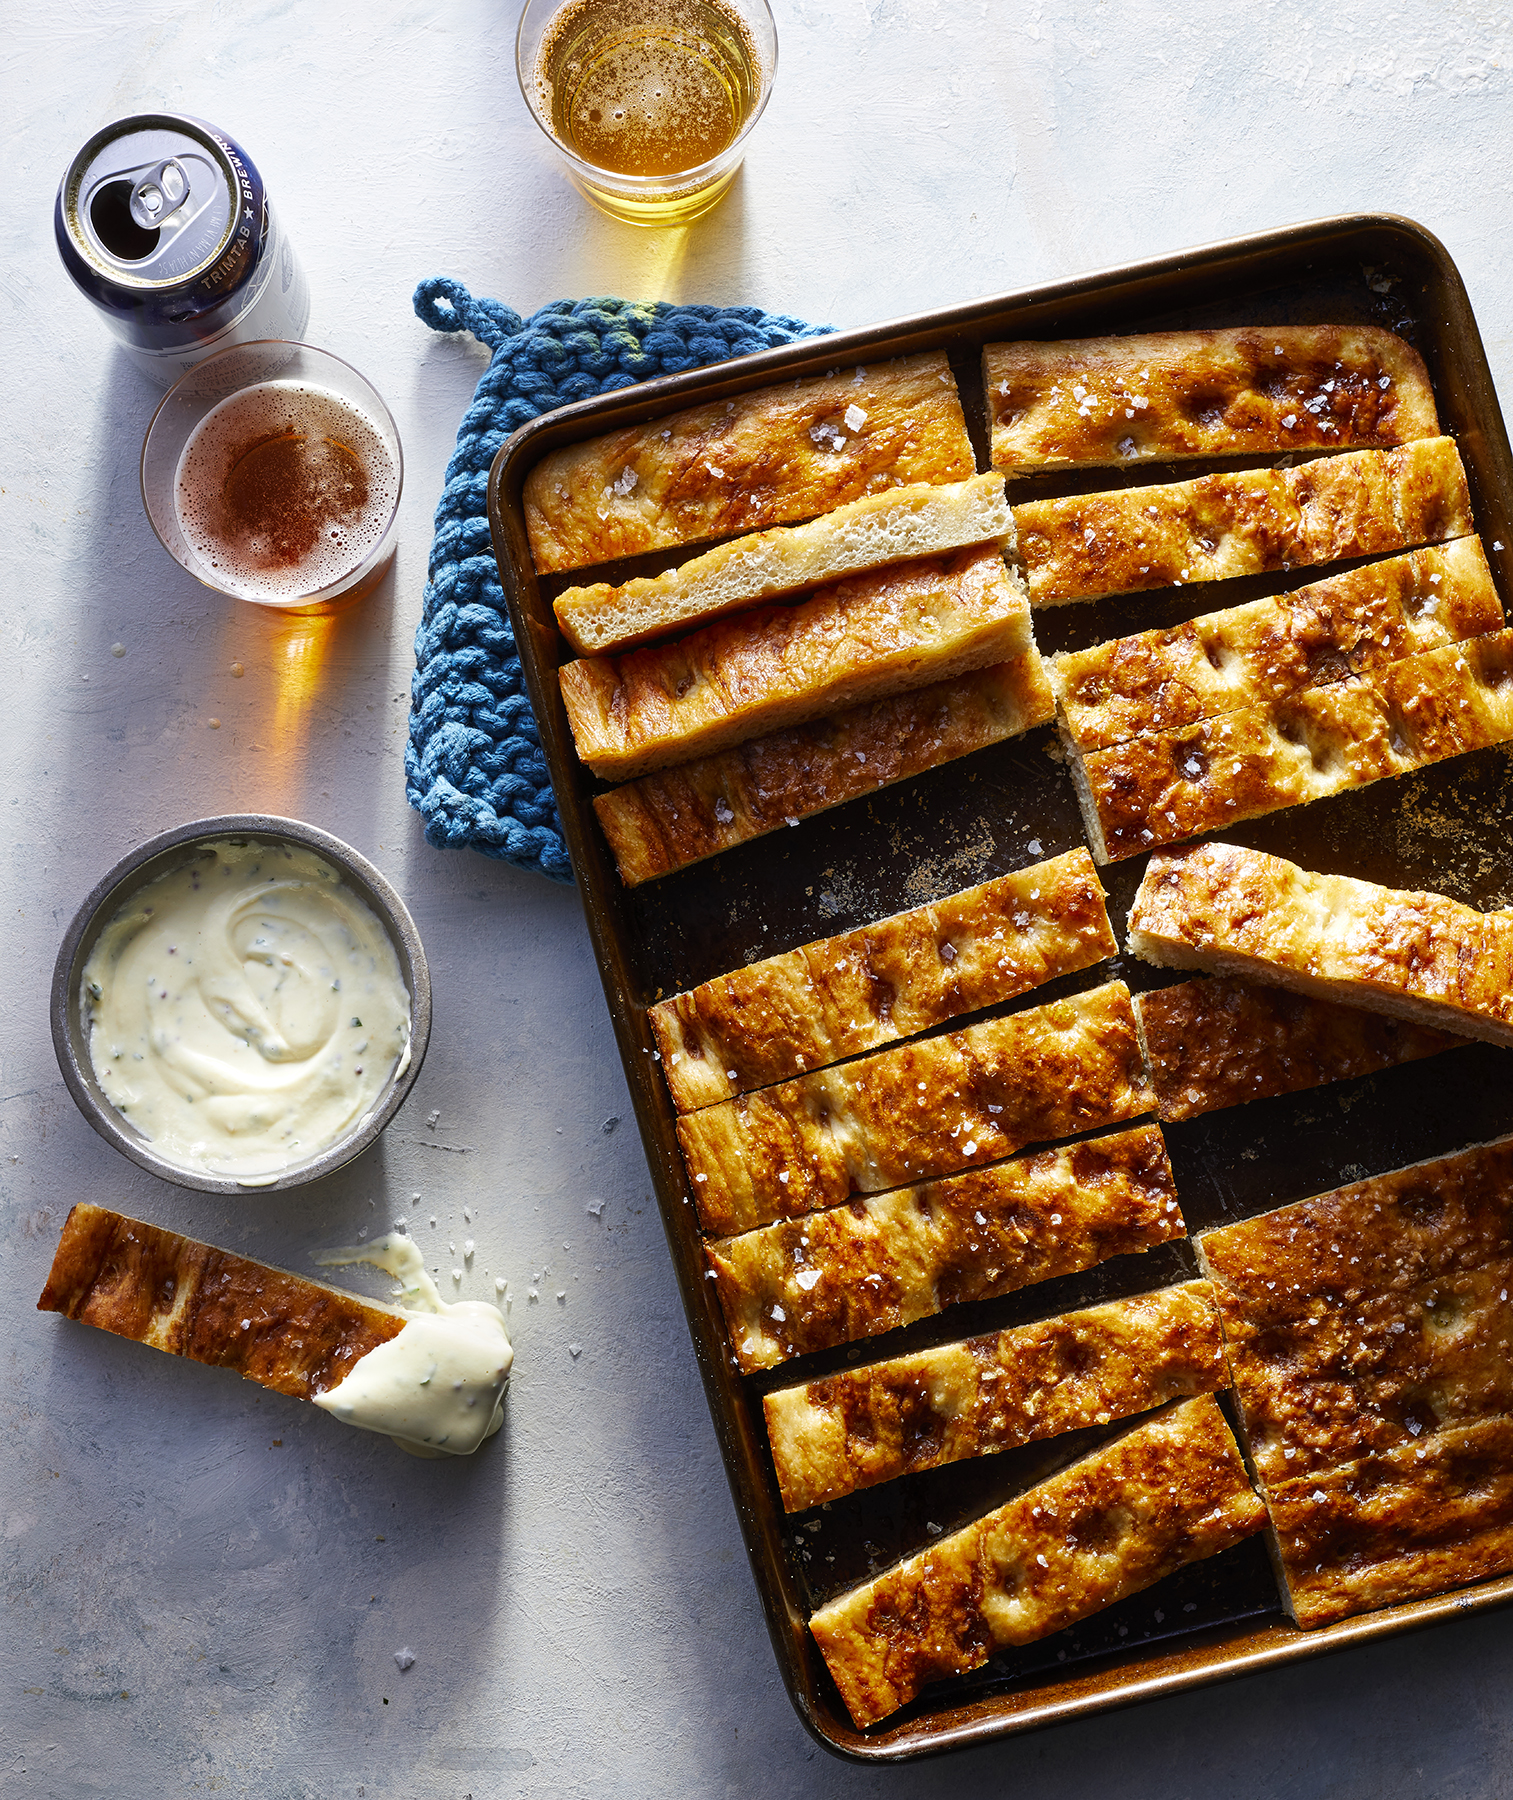 Sheet Pan Pretzel Focaccia With Cheese Sauce (Super Bowl Snacks) 2cb8ca30d7